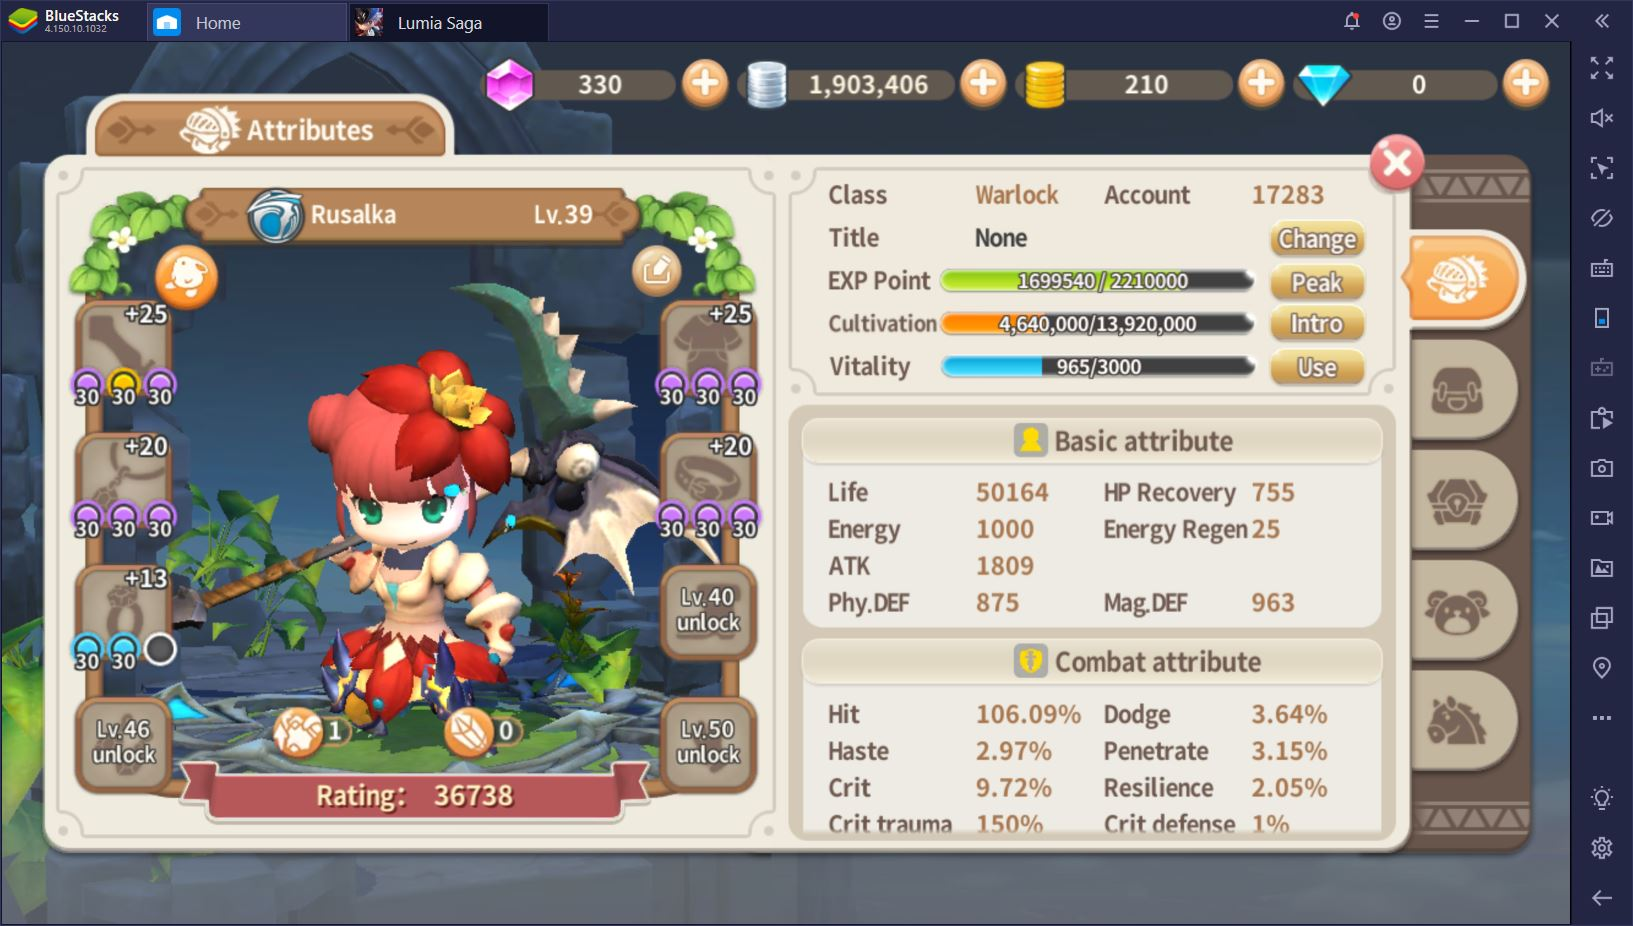 Lumia Saga: The Complete Guide to Classes and Character Development